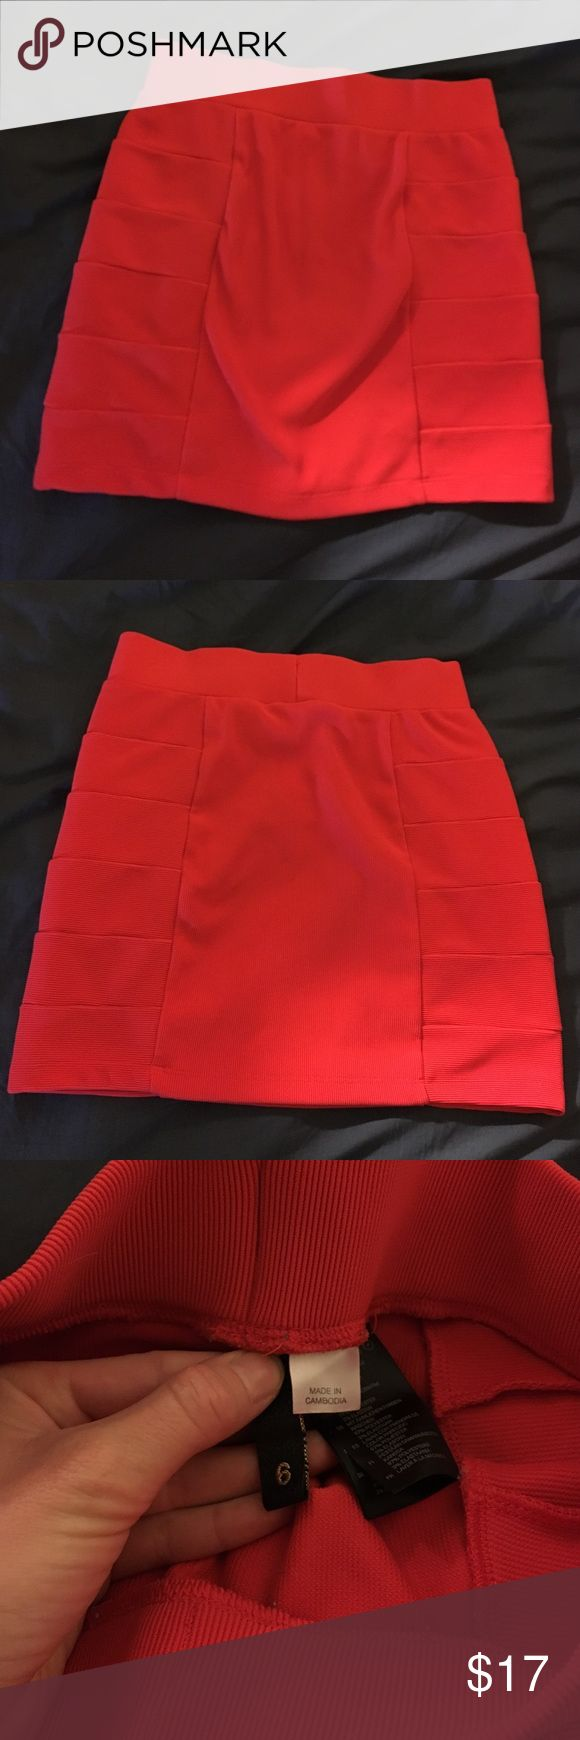 Red mini skirt from H&M. Perfect for Valentines! Red H&M mini skirt perfect for VALENTINES DAY! ❤️ Worn once! In PERFECT condition! It's size is more true to a size 2-4, but it is VERY stretchy and SUPER comfortable! Divided Skirts Mini